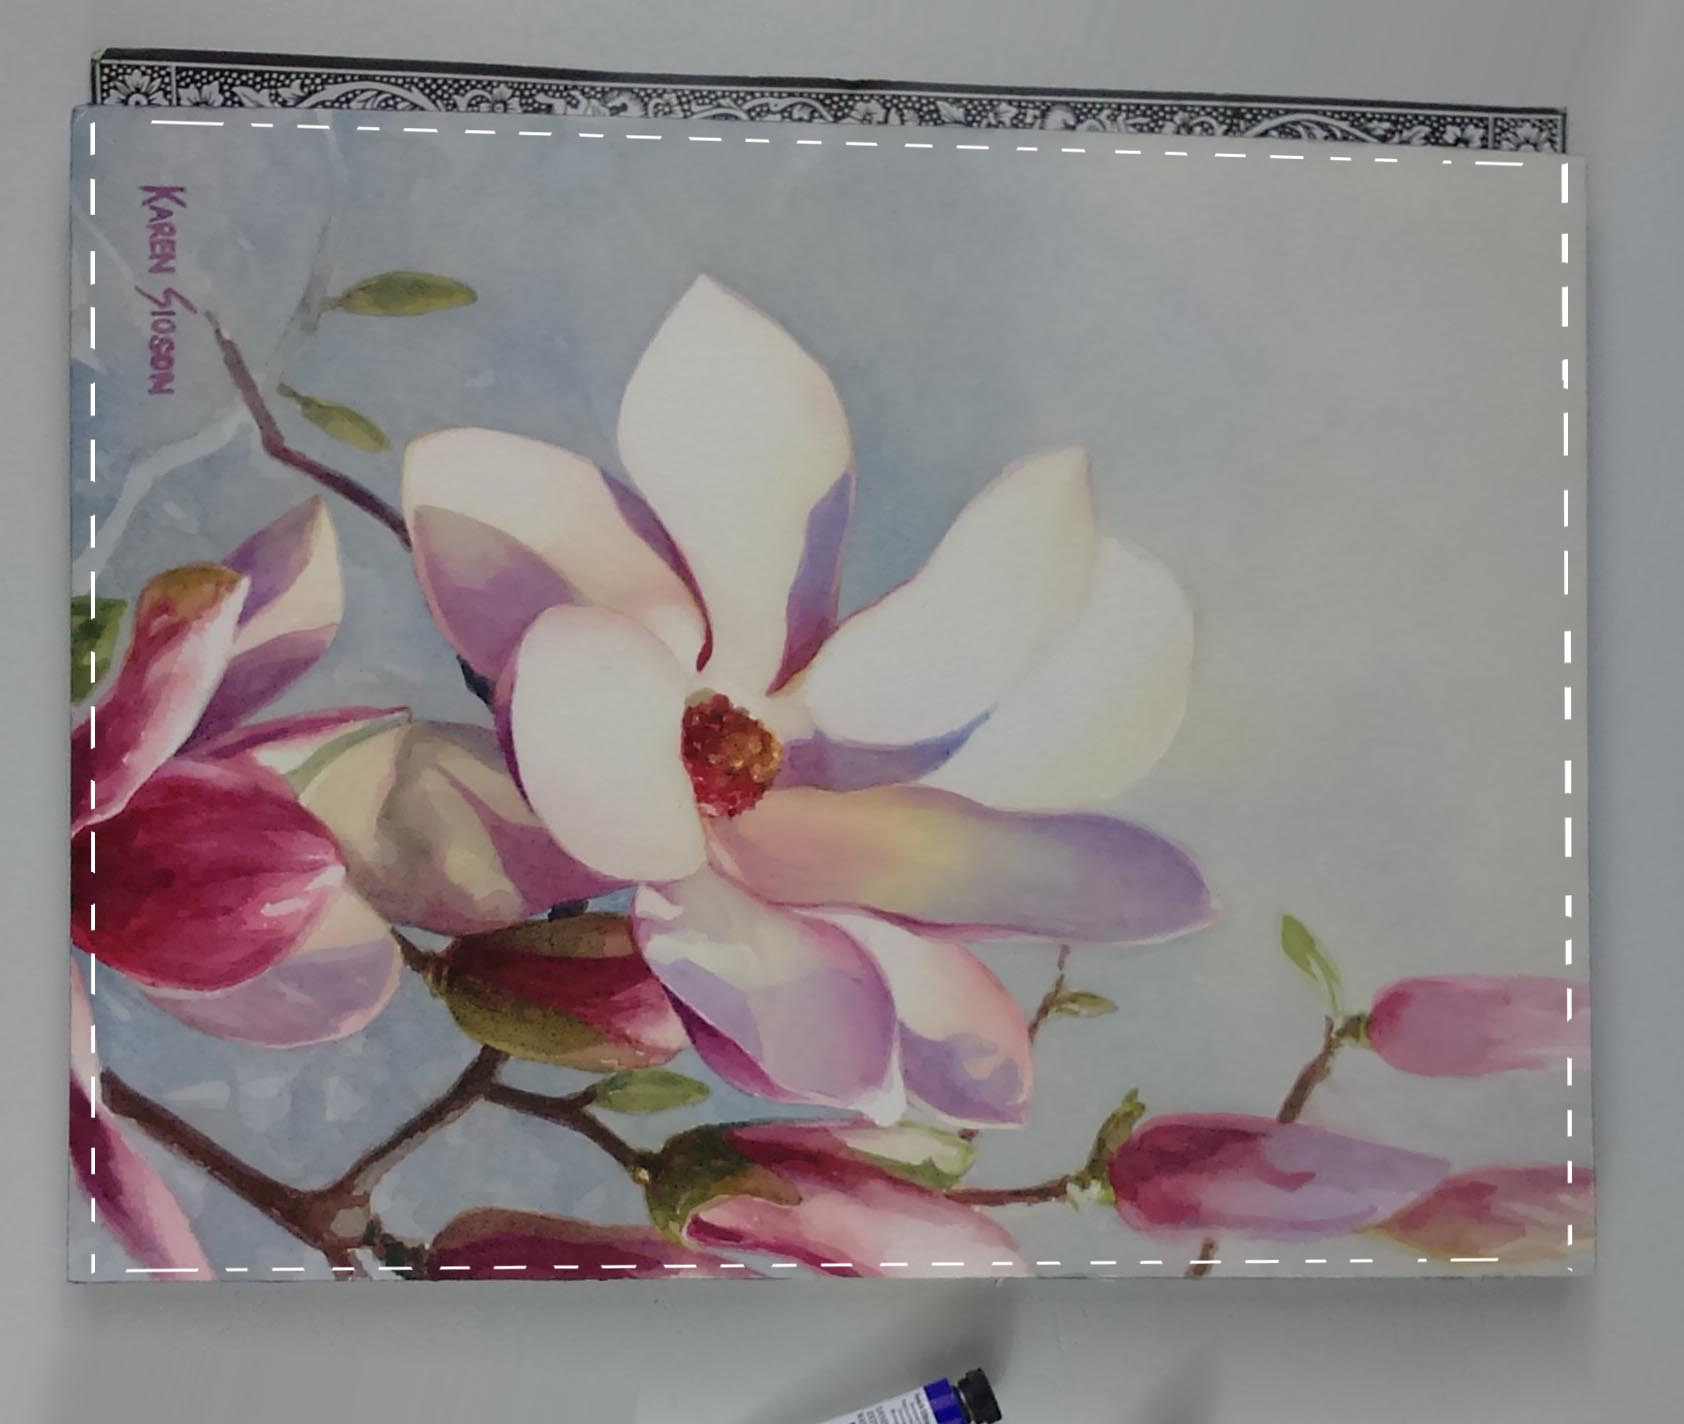 Magnolia painting using limited color palette (3 colors.)  Magnolia photo reference credited to and with permission of Joanne Masias Gustillo.